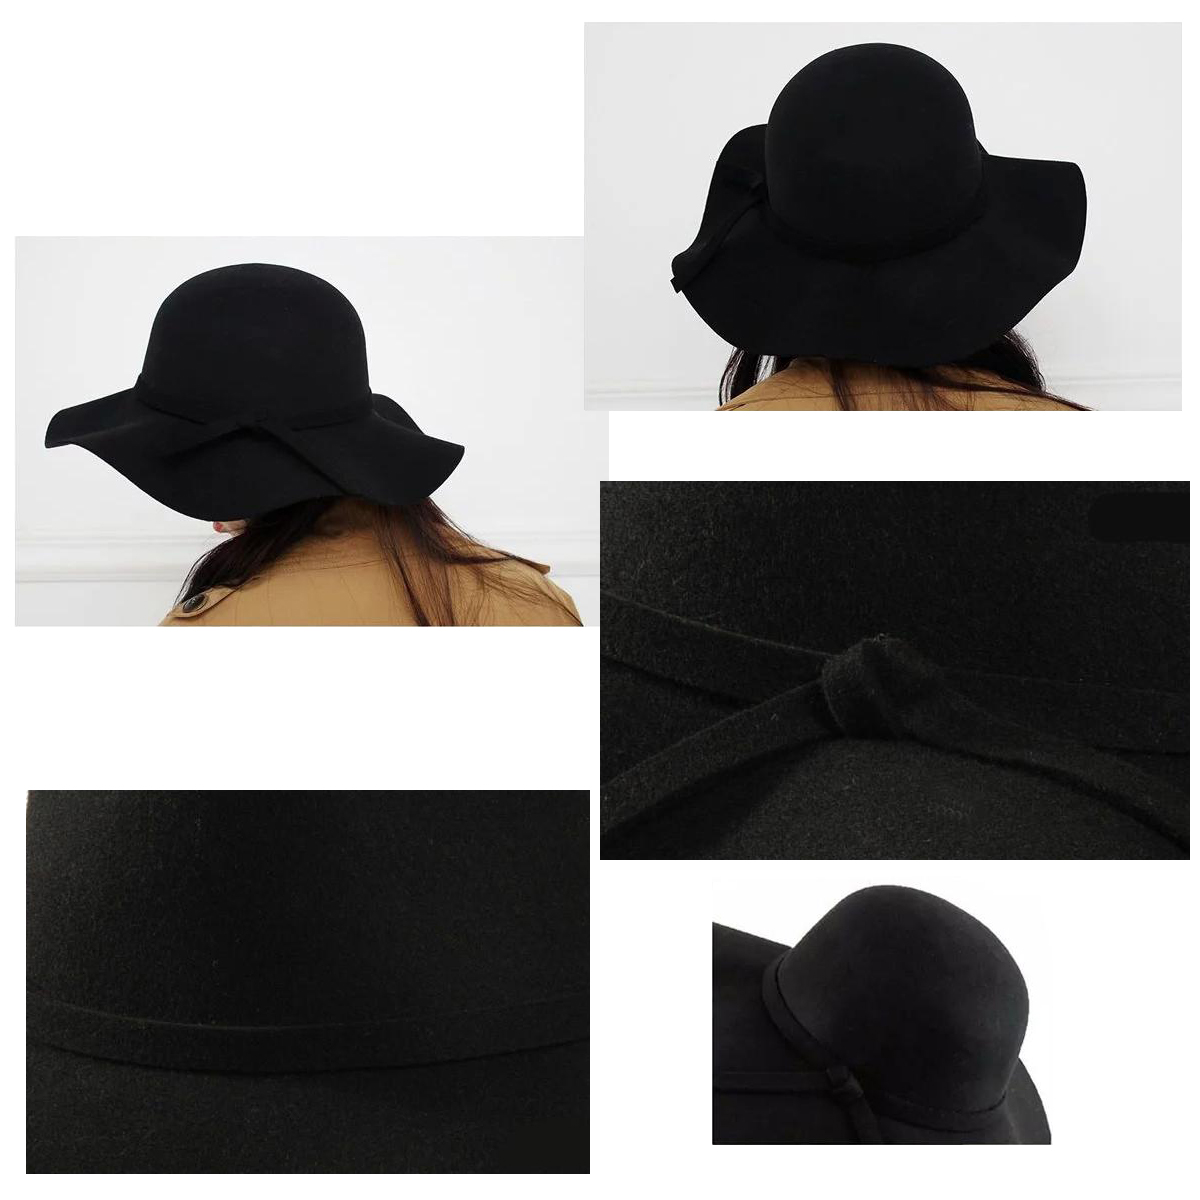 f263075cc0498e 2017 NEW Stylish Kids Girls Wide Brim Retro Felt Bowler Floppy Cap Cloche  Hat black-in Hats & Caps from Mother & Kids on Aliexpress.com | Alibaba  Group